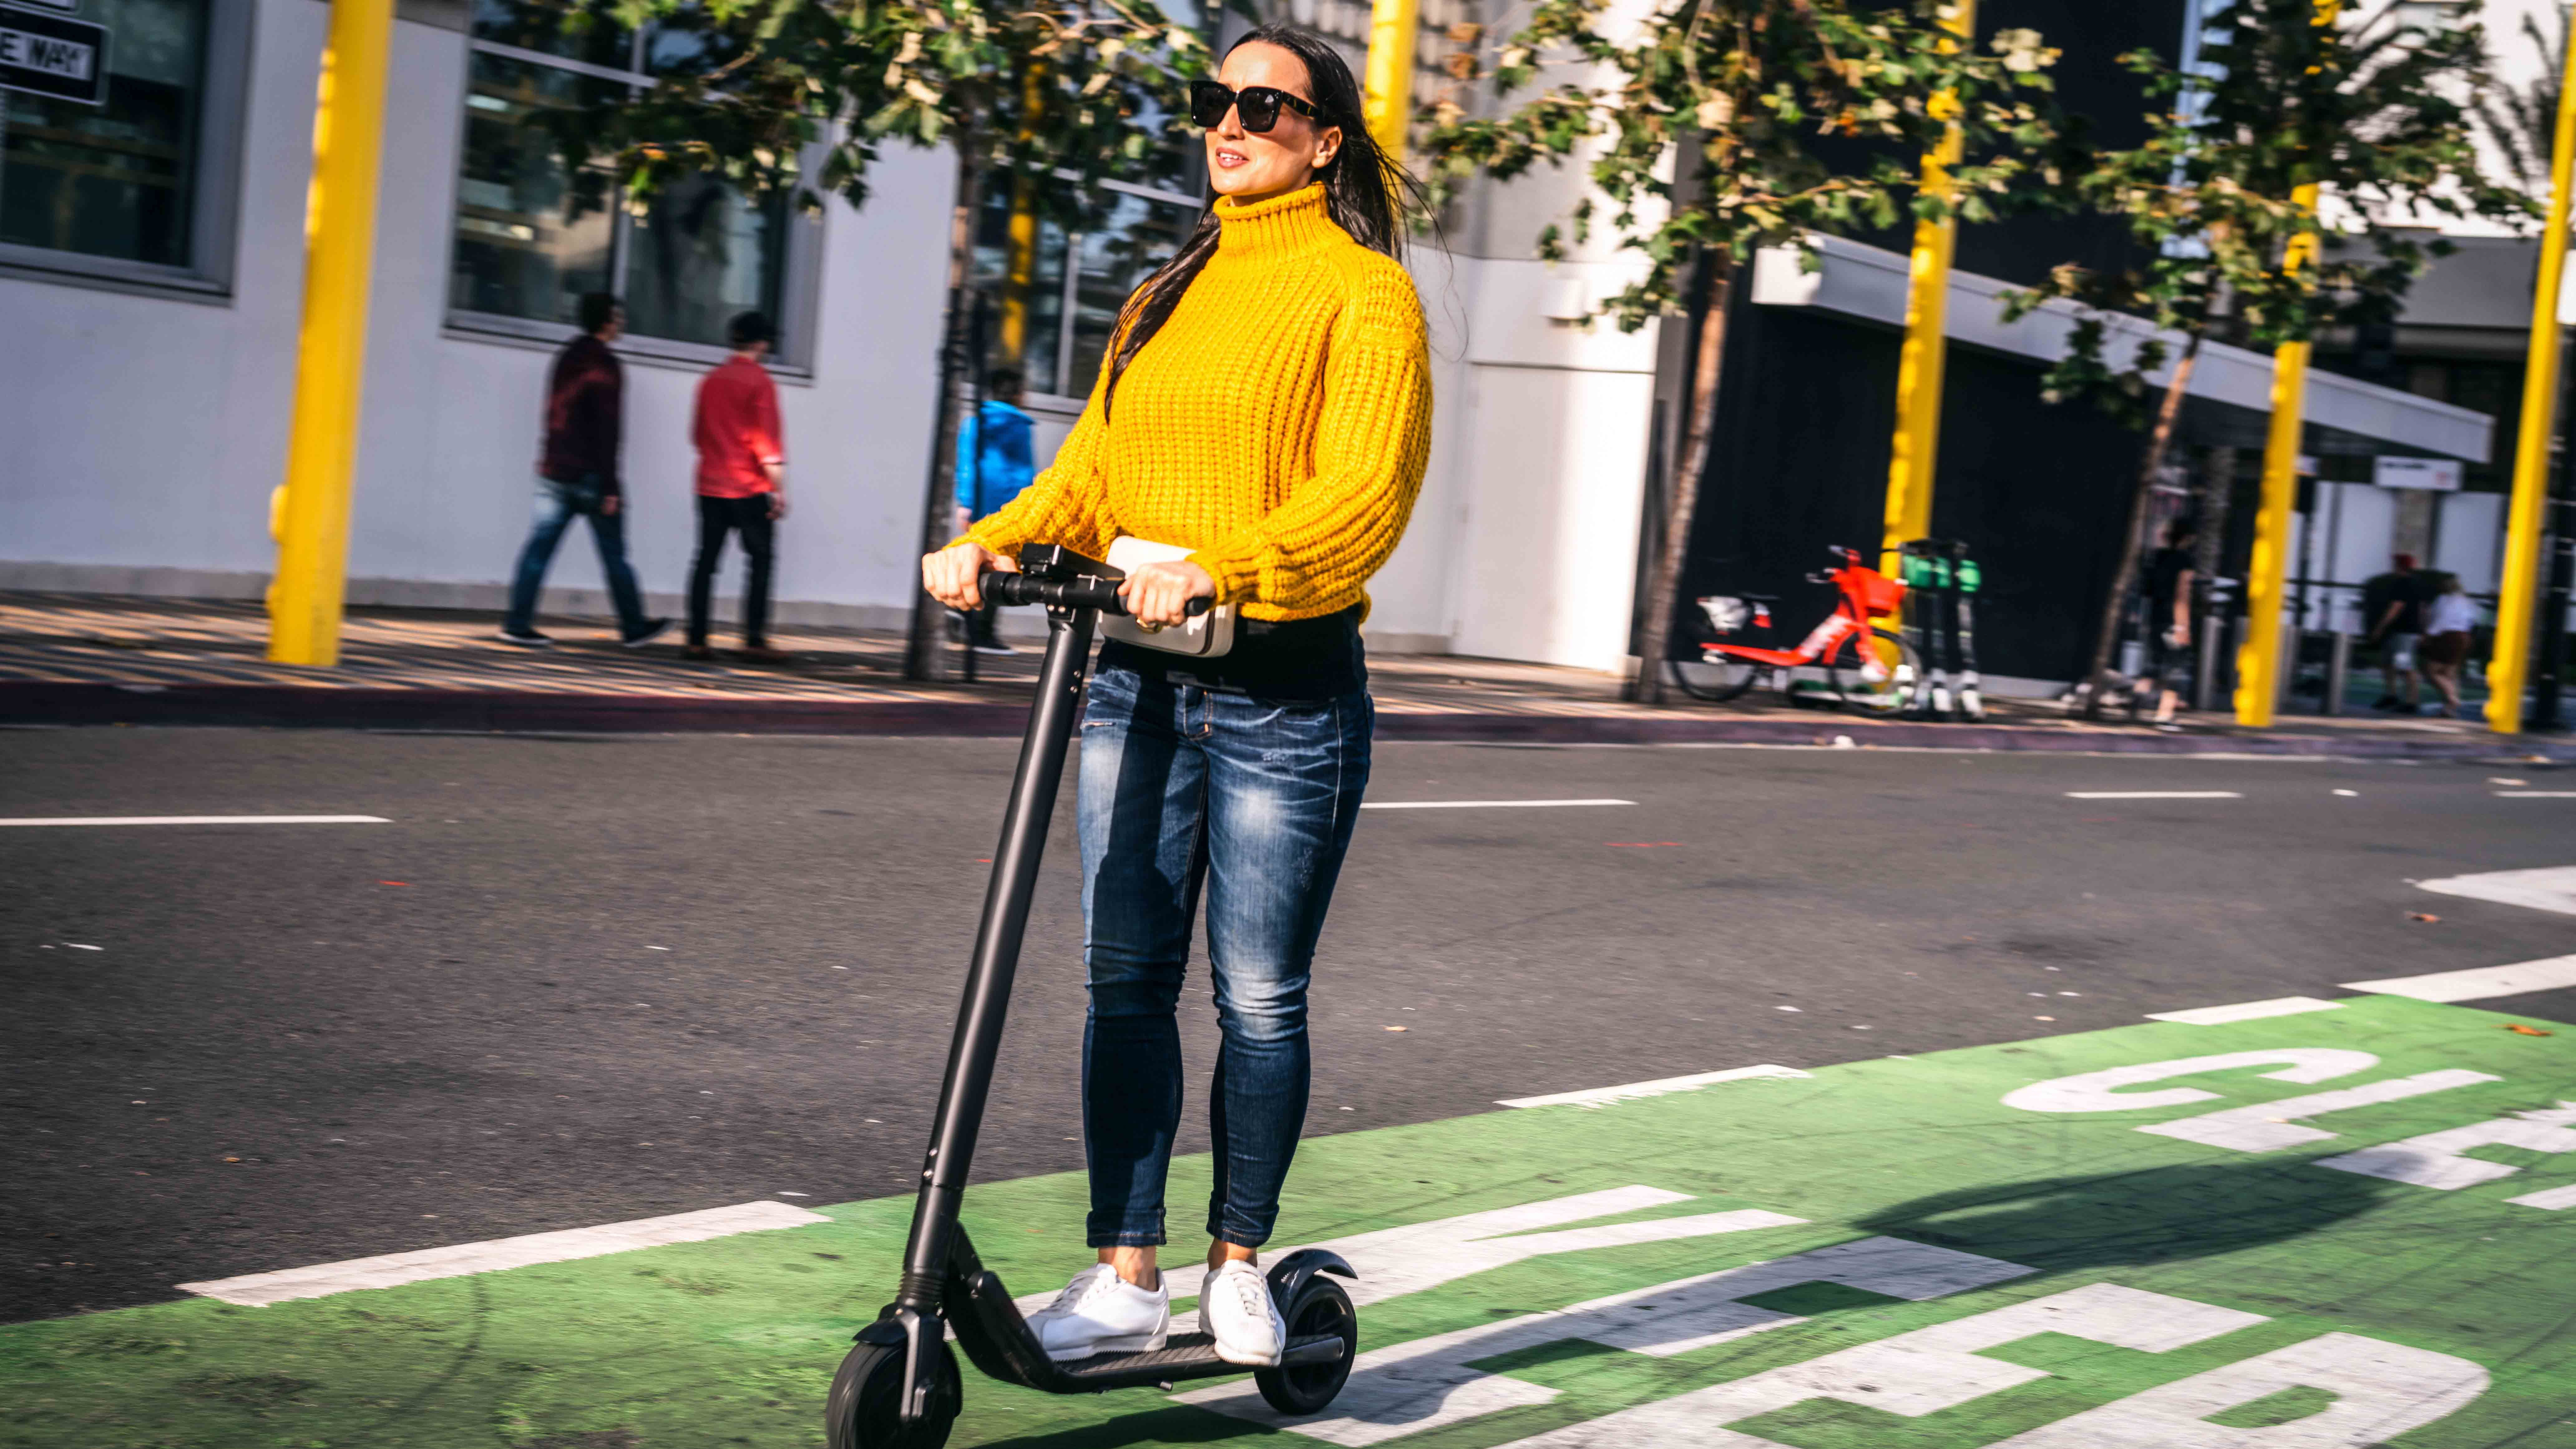 Electric scooters are loved by some, abhorred by others - and they are not quite as green as their image (Credit: Getty Images)